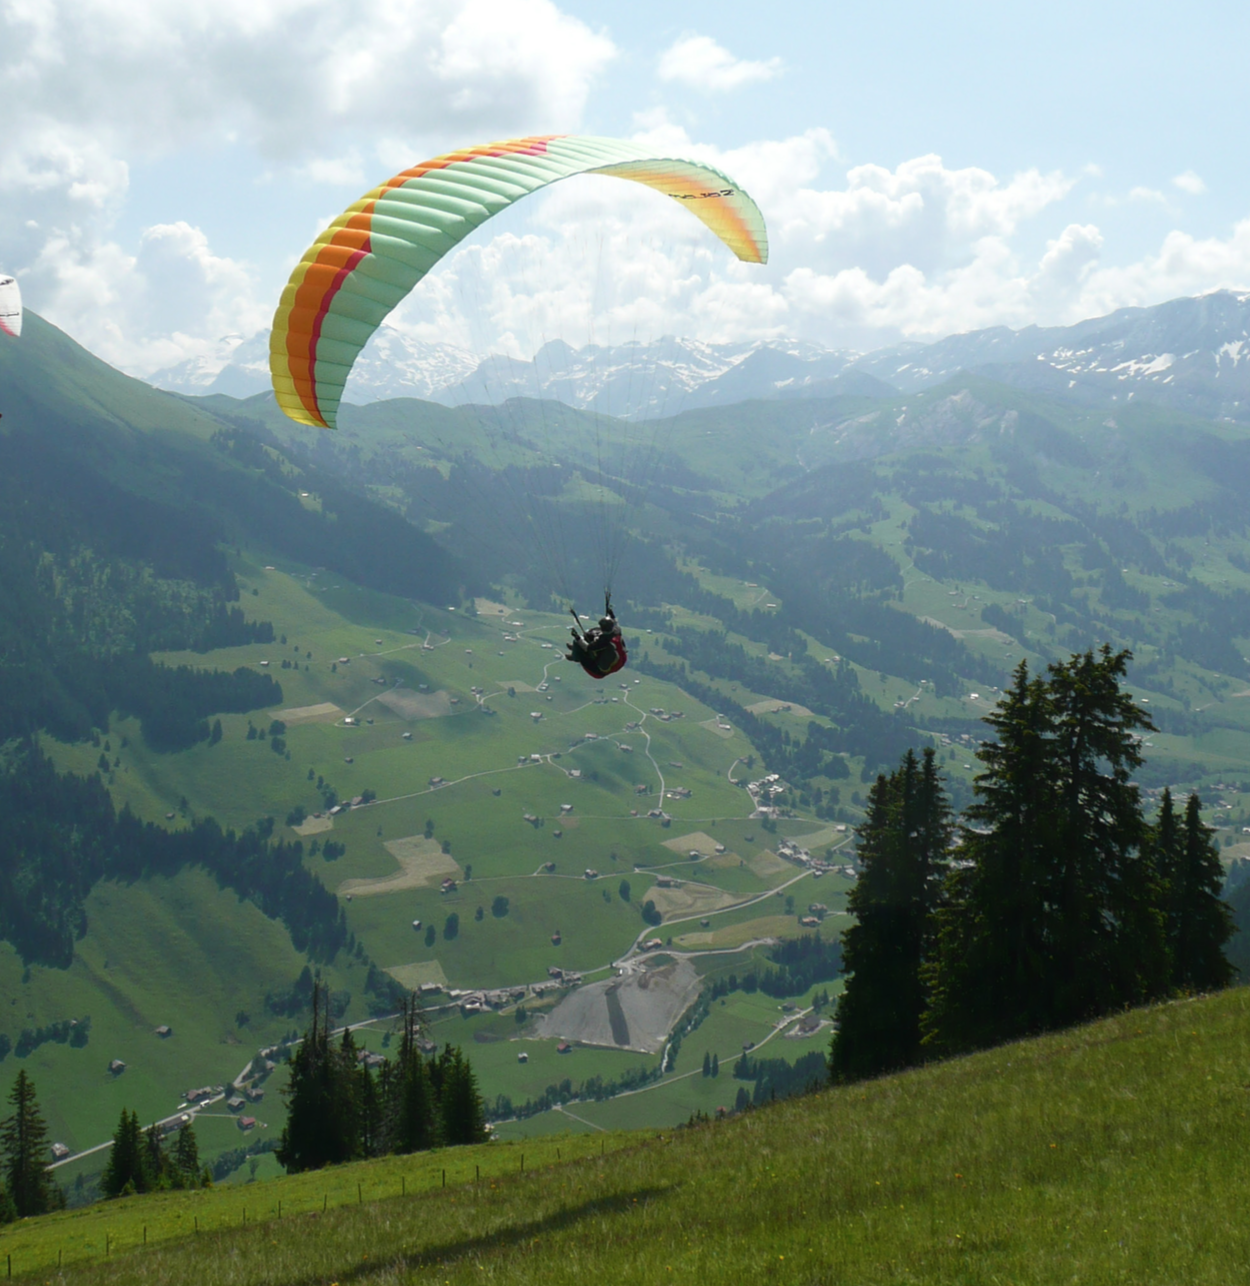 Mountain Highs: Gstaad rewards summertime visitors with verdant valleys framed by snow-capped peaks